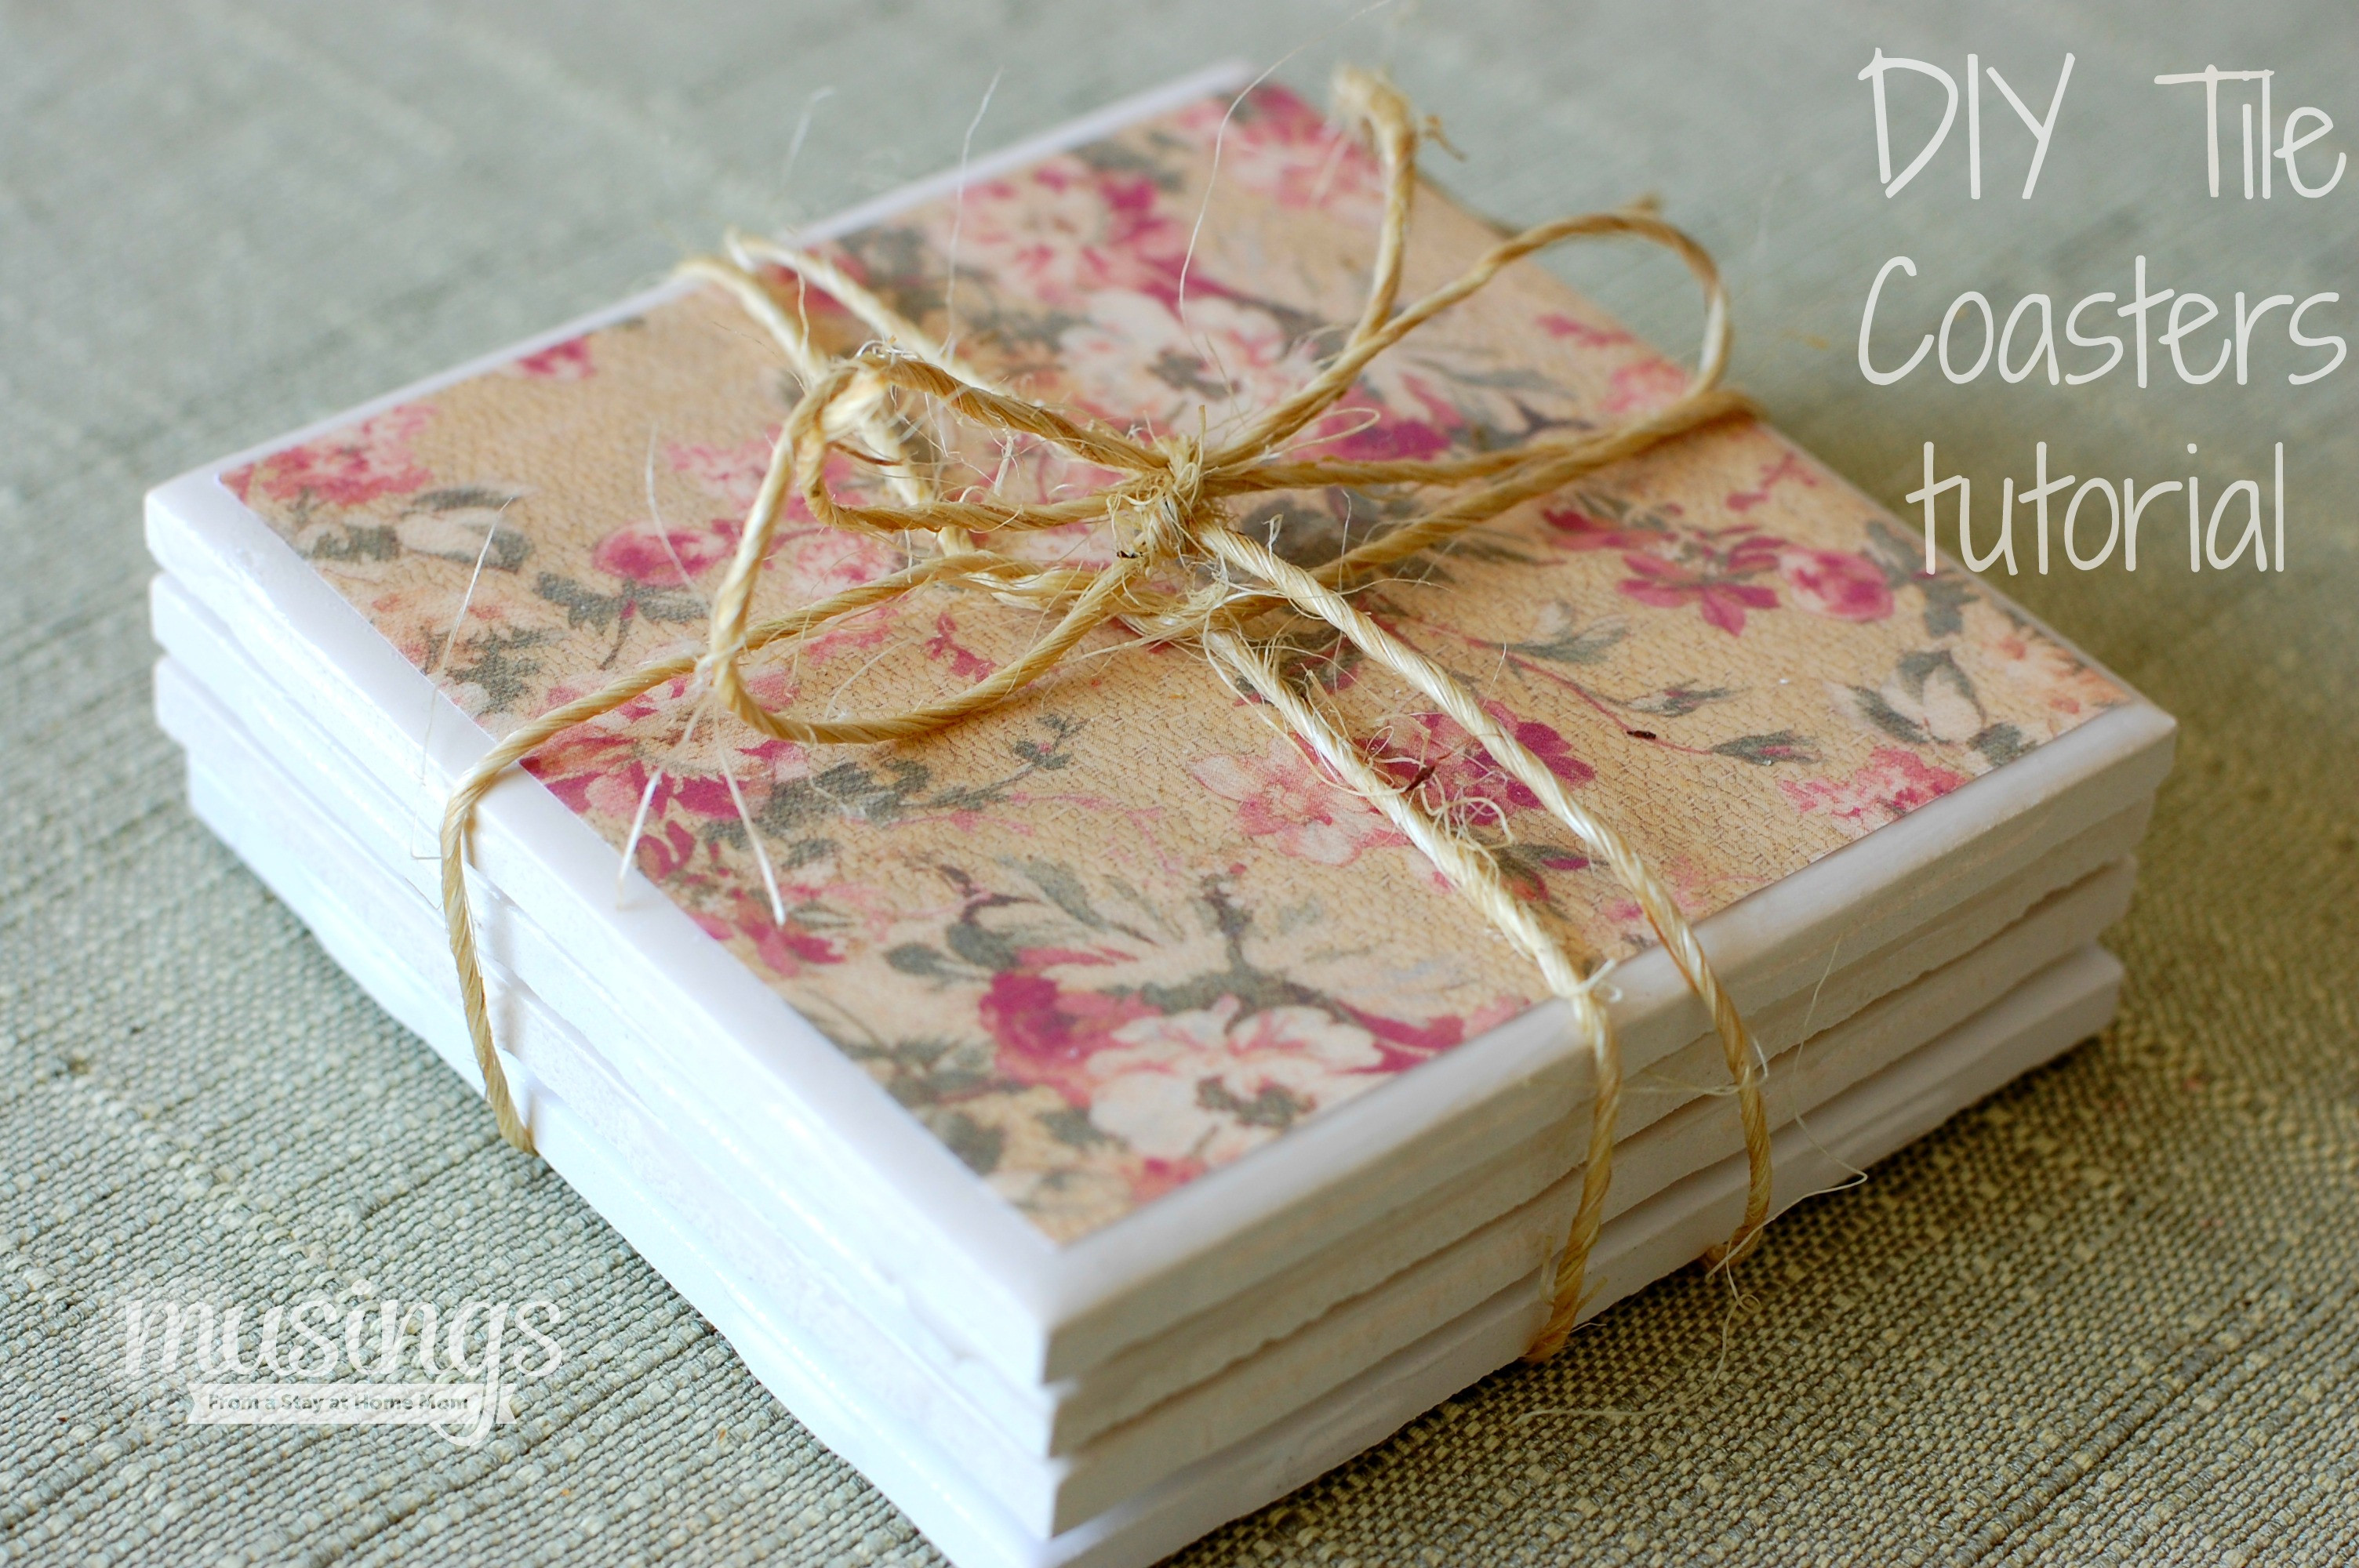 Best ideas about DIY Coaster Tiles . Save or Pin DIY Tile Coasters Tutorial Living Well Mom Now.